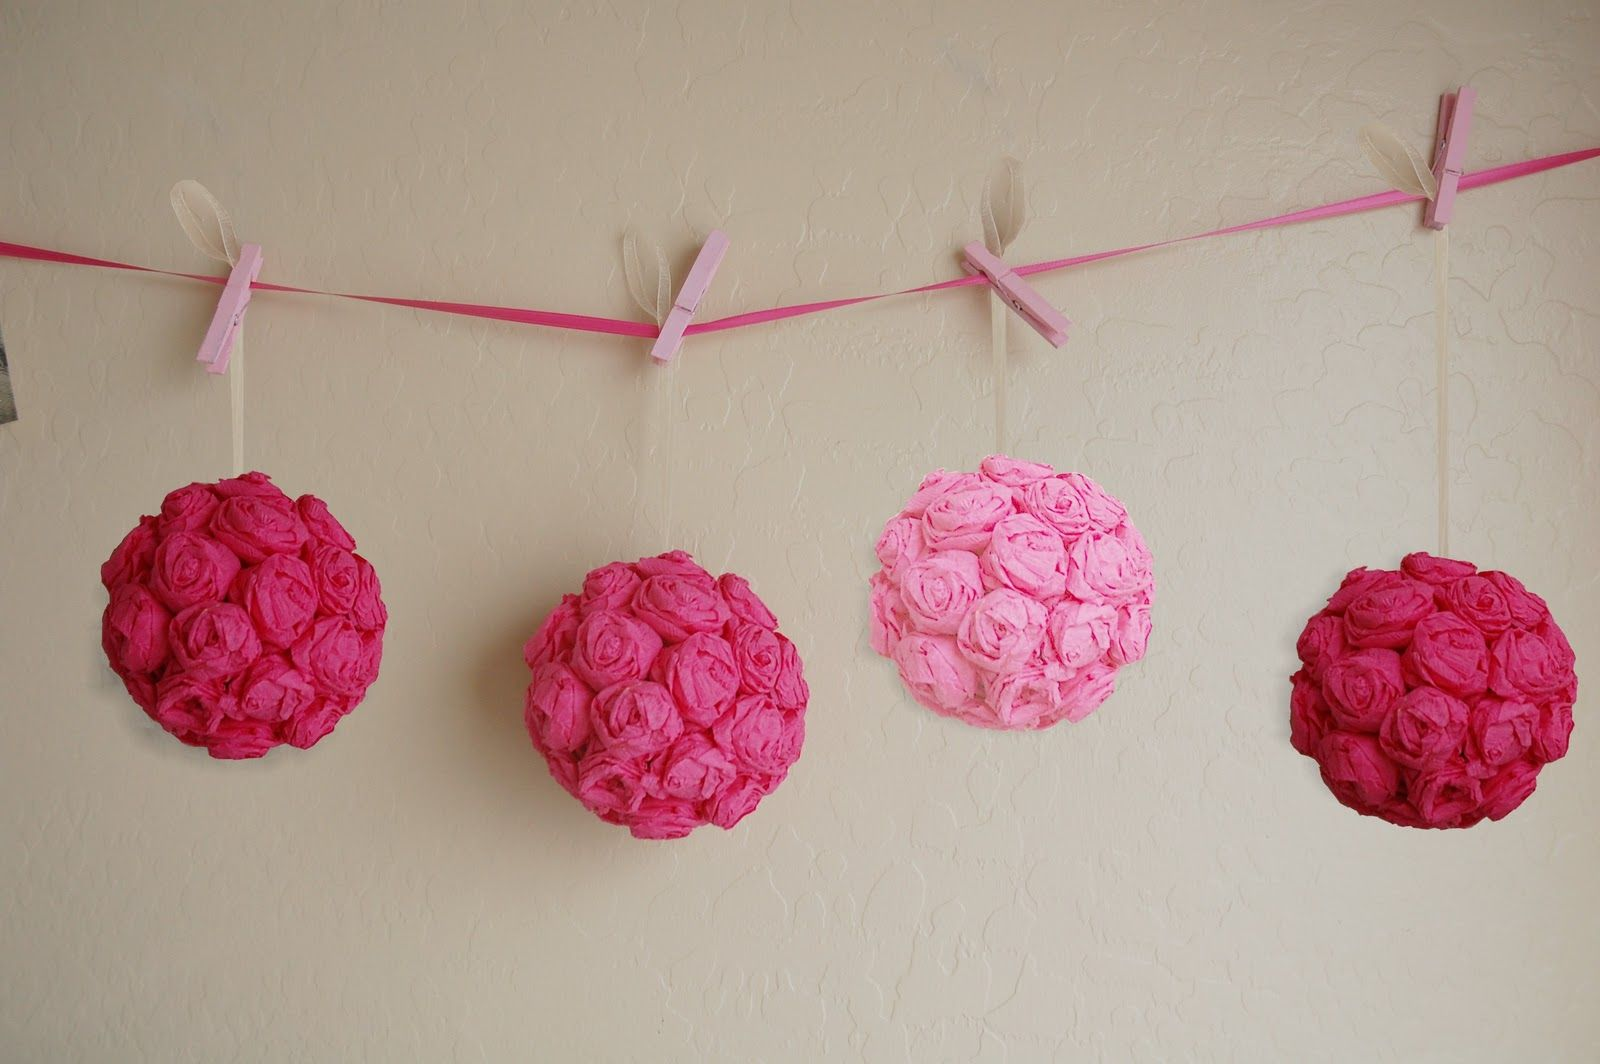 Crepe paper knocking it off how to crepe paper rose pomander how to crepe paper rose paper flower ballcrepe mightylinksfo